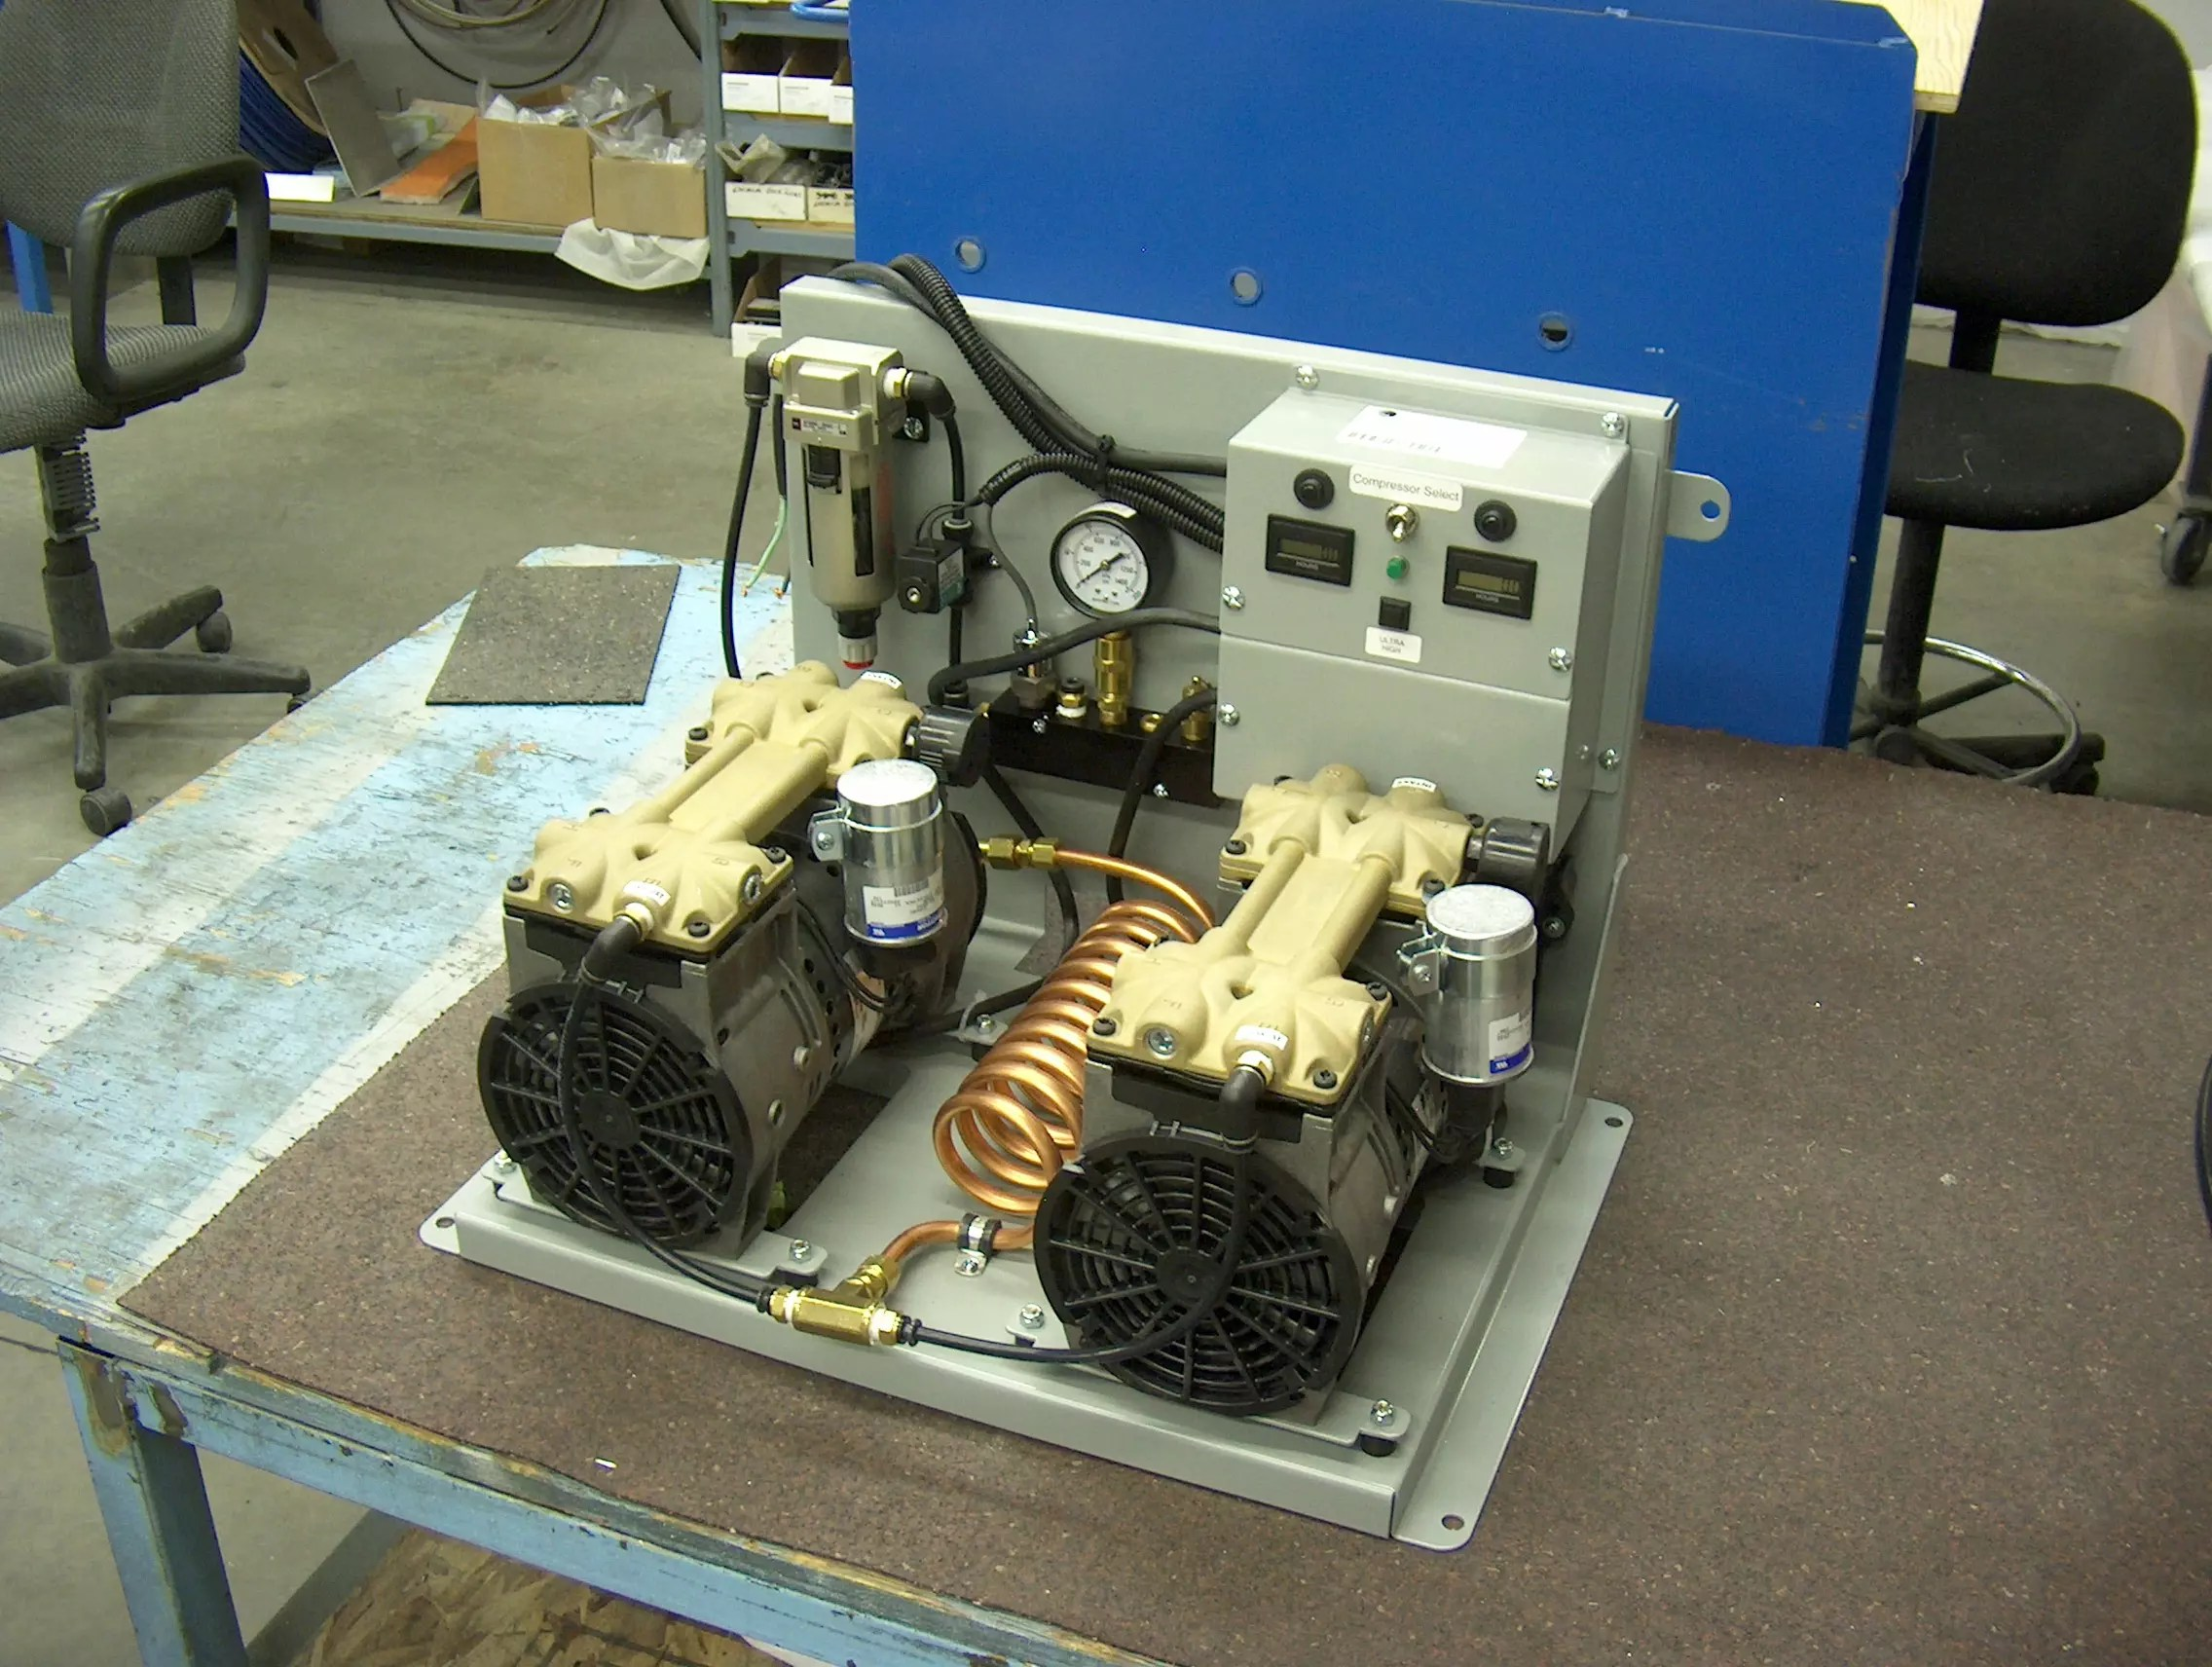 Overhead view of Valid Manufacturing auxiliary air compressor on a table.